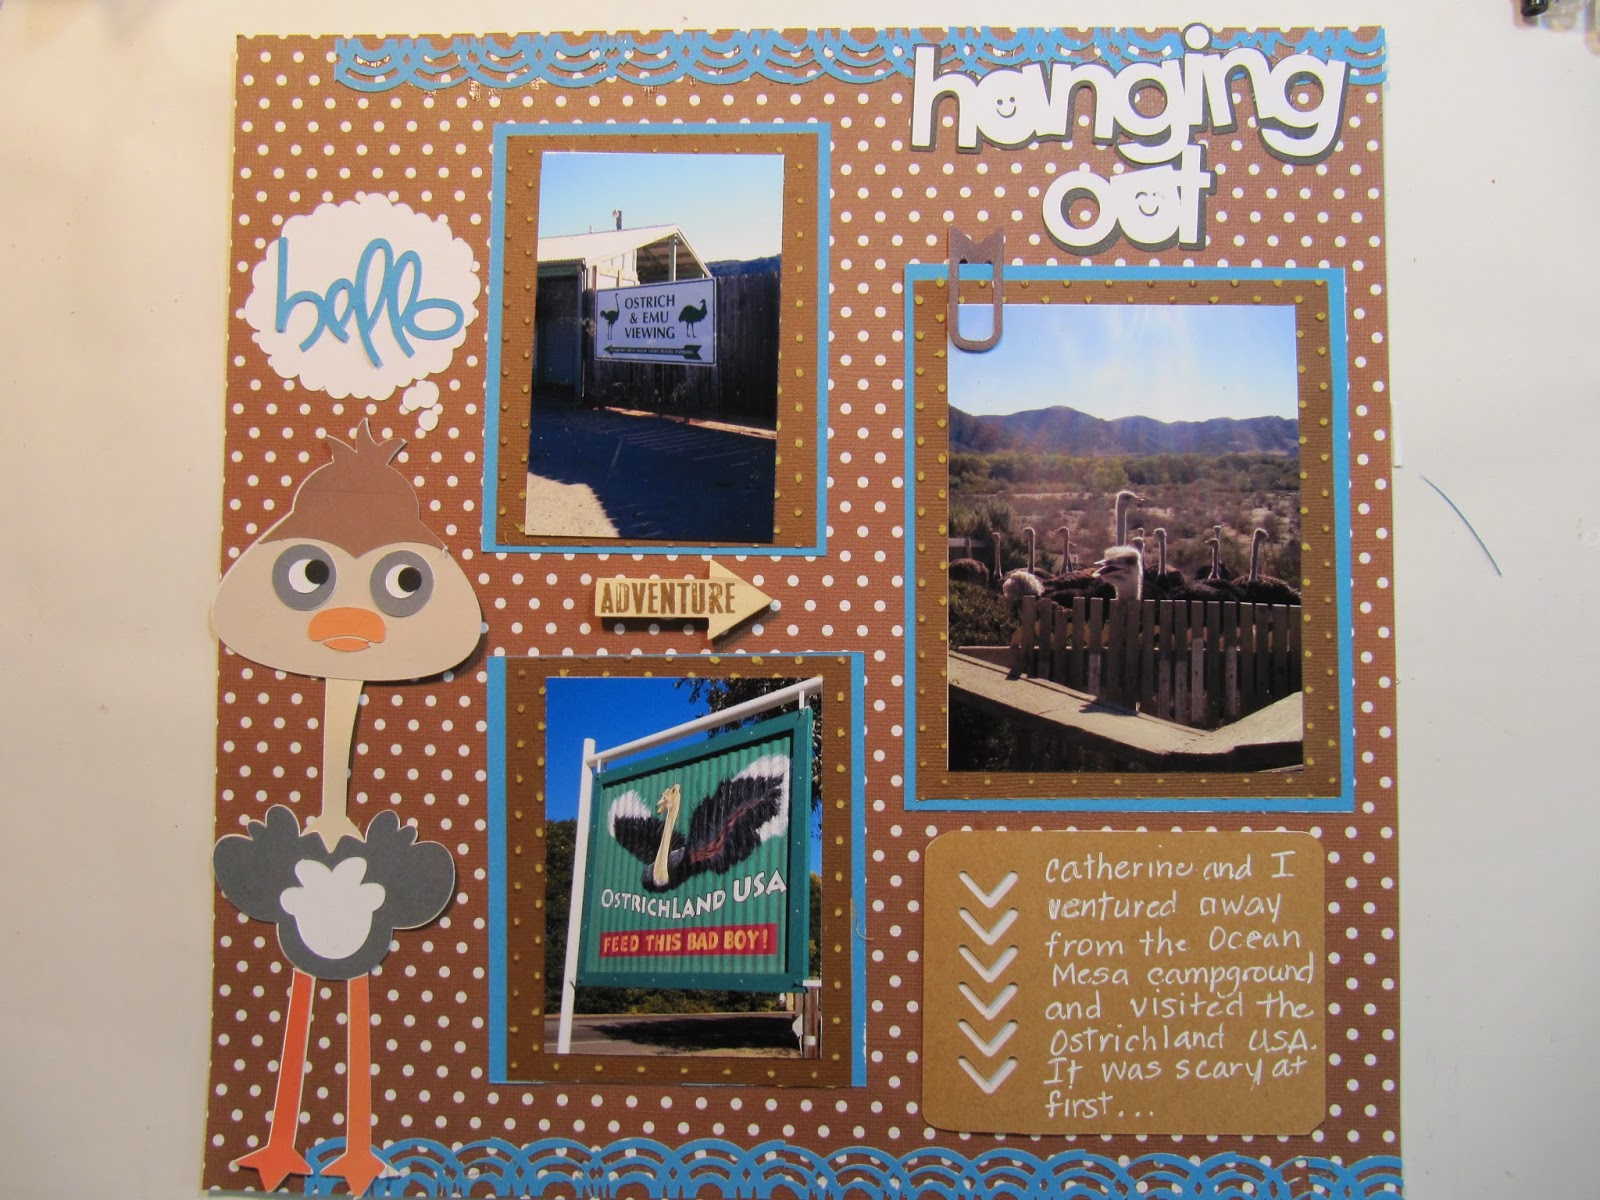 How to scrapbook on youtube - I M Still Learning How To Use The Pens On The Cricut Explore And All That Is Involved I Ended Up With What Is On There But Not Really What I Wanted